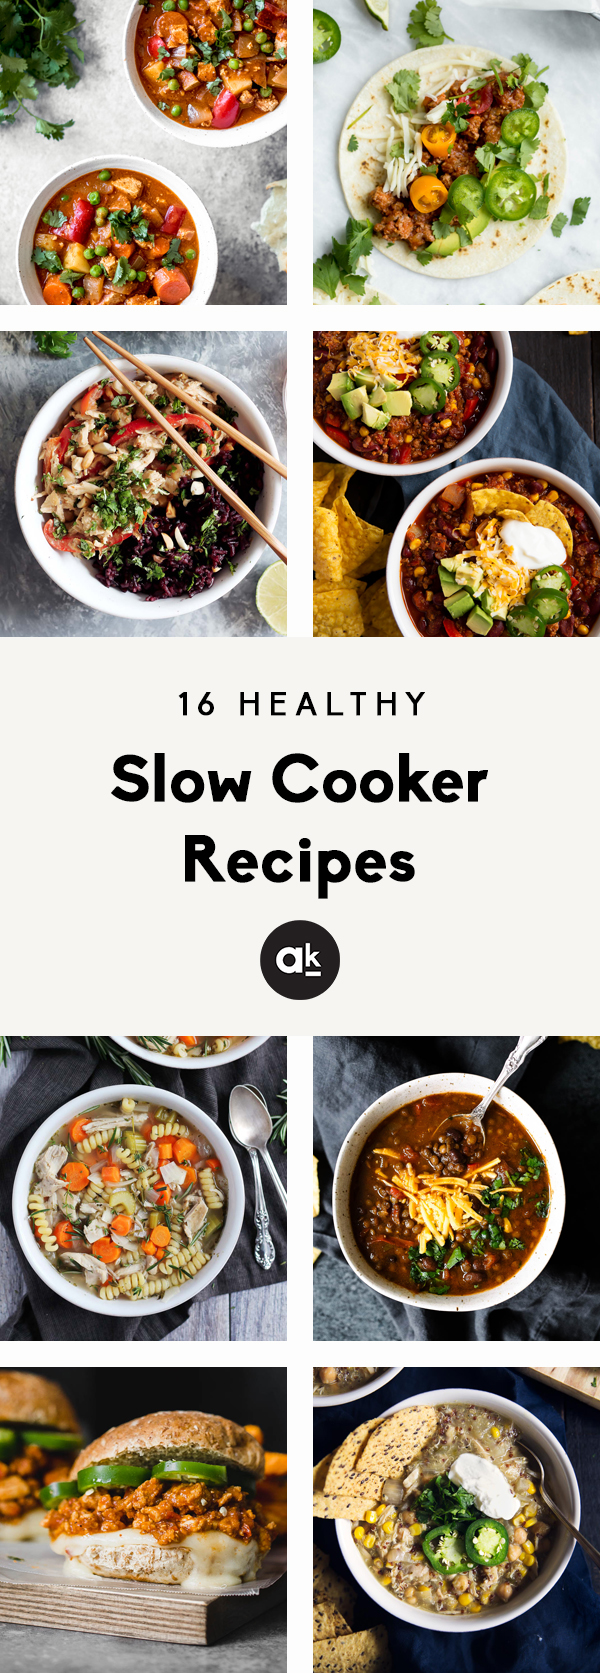 16 delicious and healthy slow cooker recipes to make year-round! With nourishing soups and stews, plus delicious tacos and chilis, these slow cooker recipes will be your new favorites to feed a crowd or meal prep for the week.